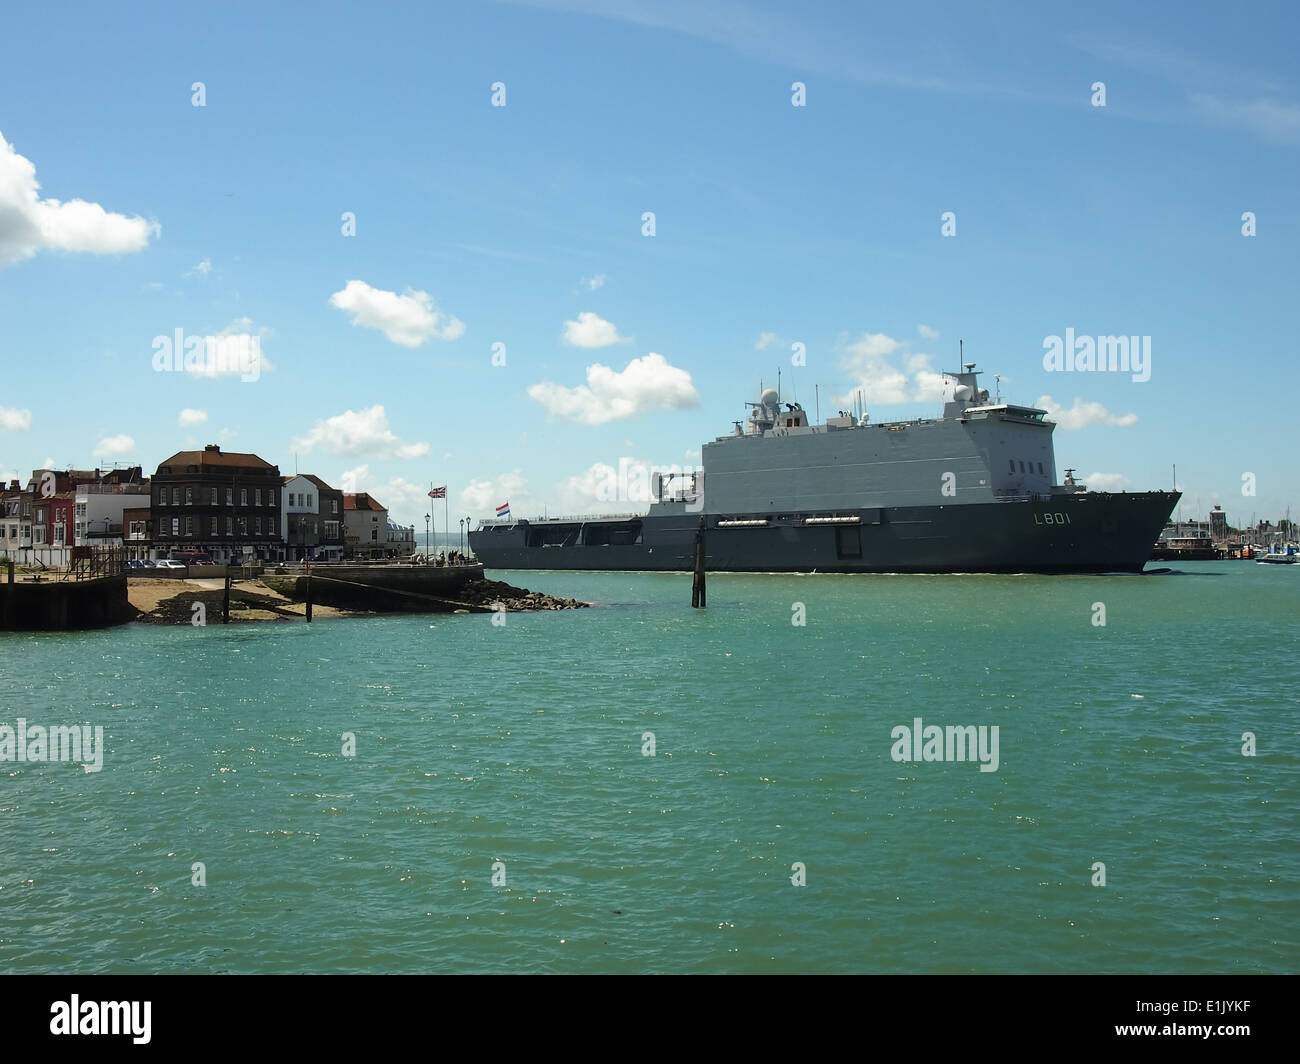 HNLMS Johan de Witt entering Portsmouth Harbour, England - Stock Image